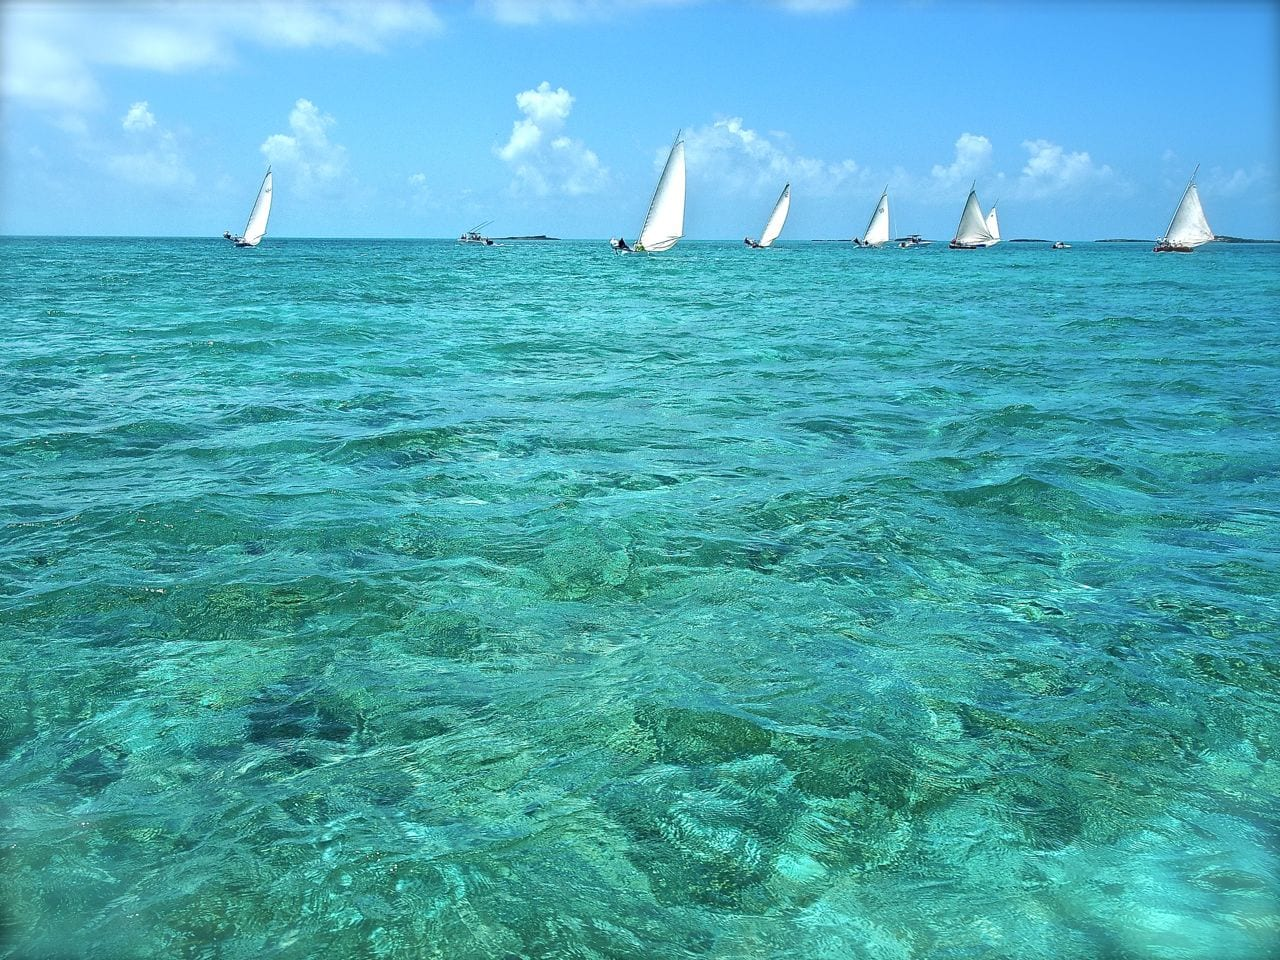 The Staniel Cay Black Point Regatta takes place on Emancipation Weekend every year